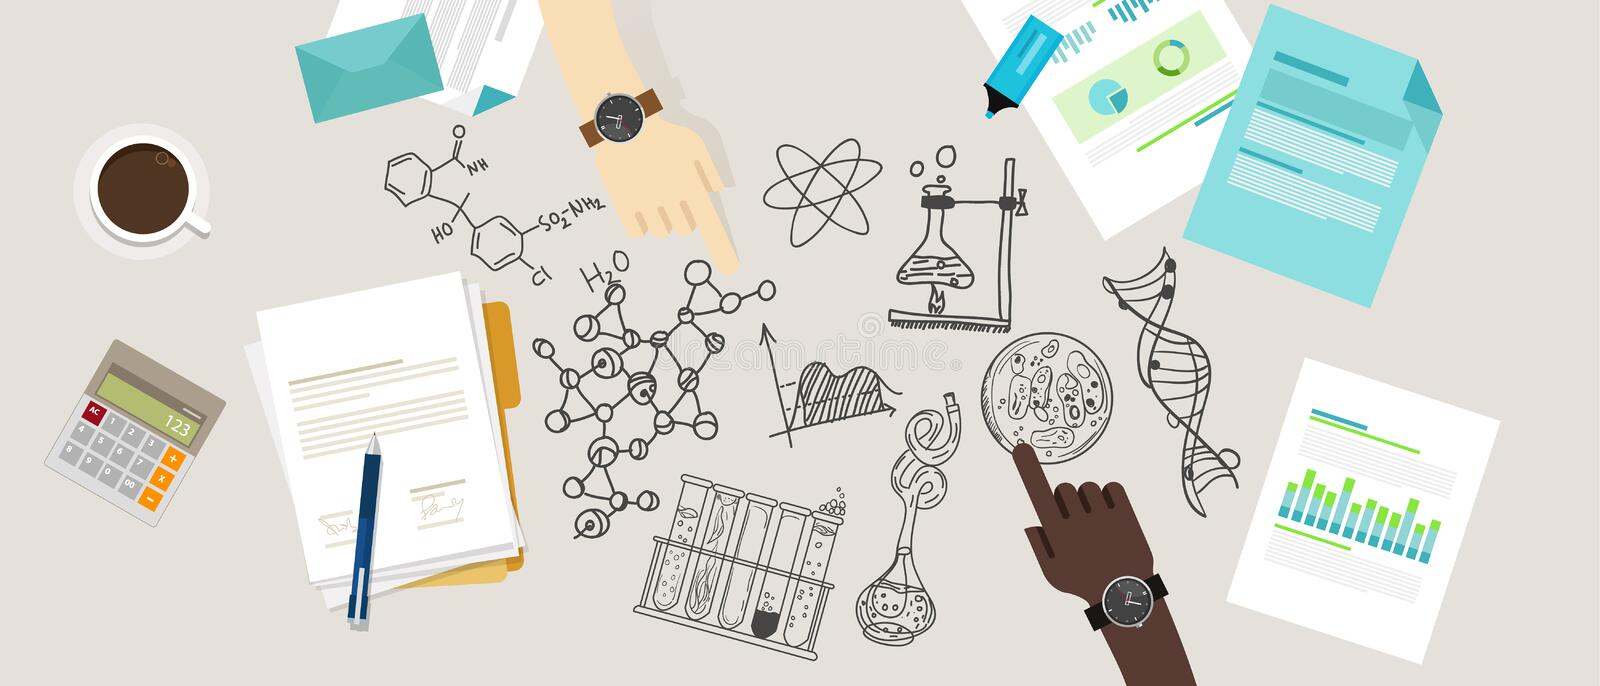 Science icon biology lab sketch drawing illustration chemistry laboratory desk research collaborate team work. Vector stock illustration